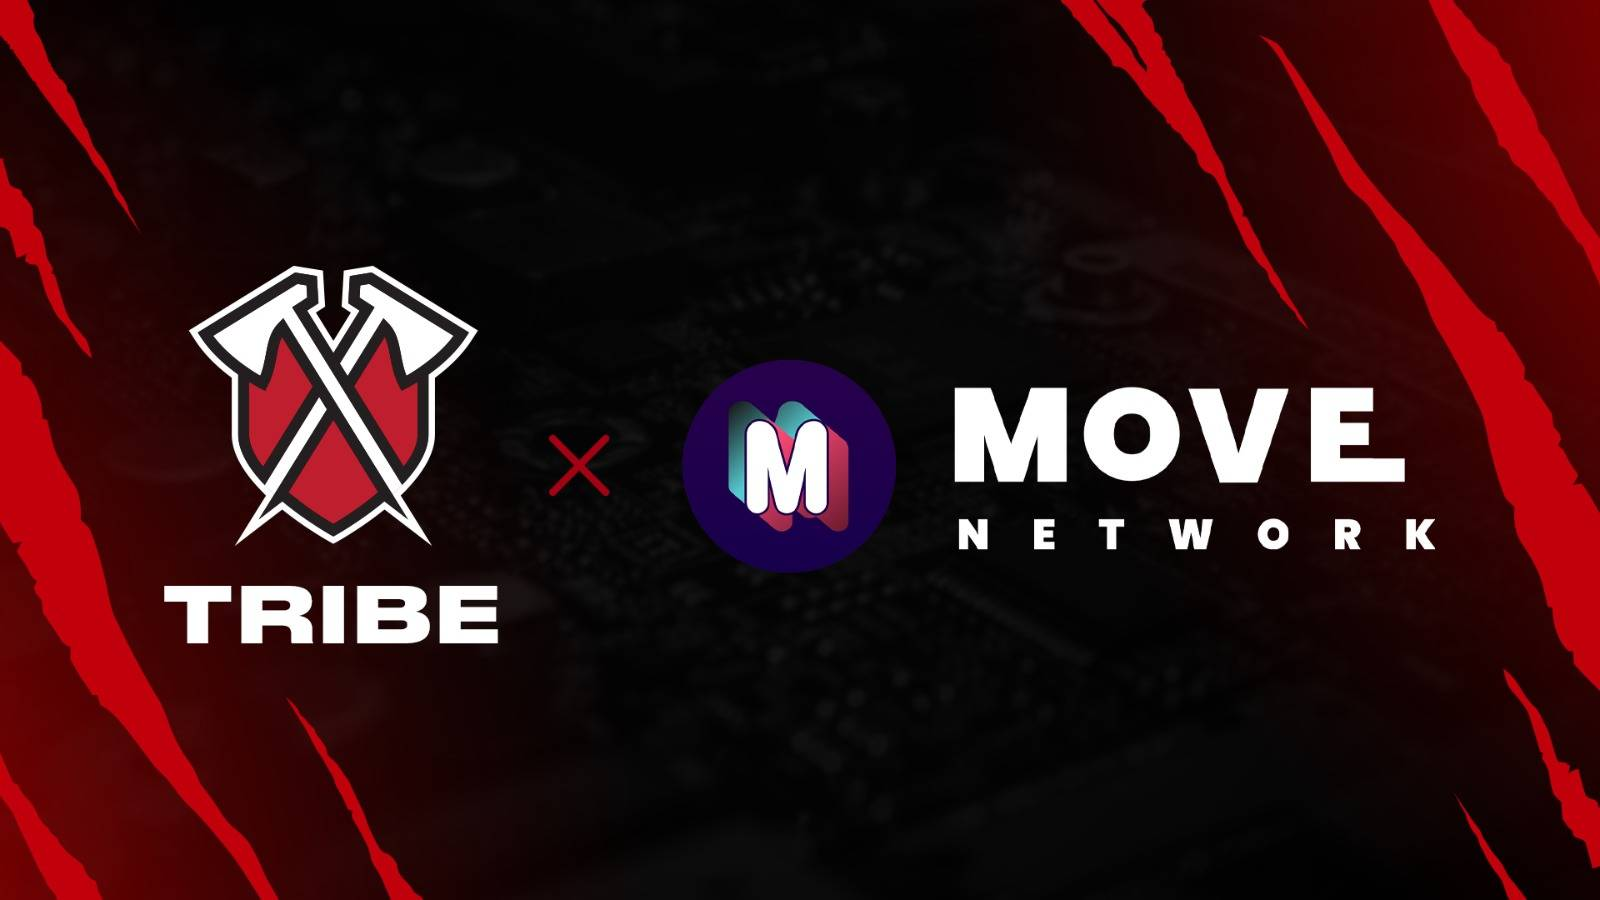 MOVE Network & Tribe Gaming出发